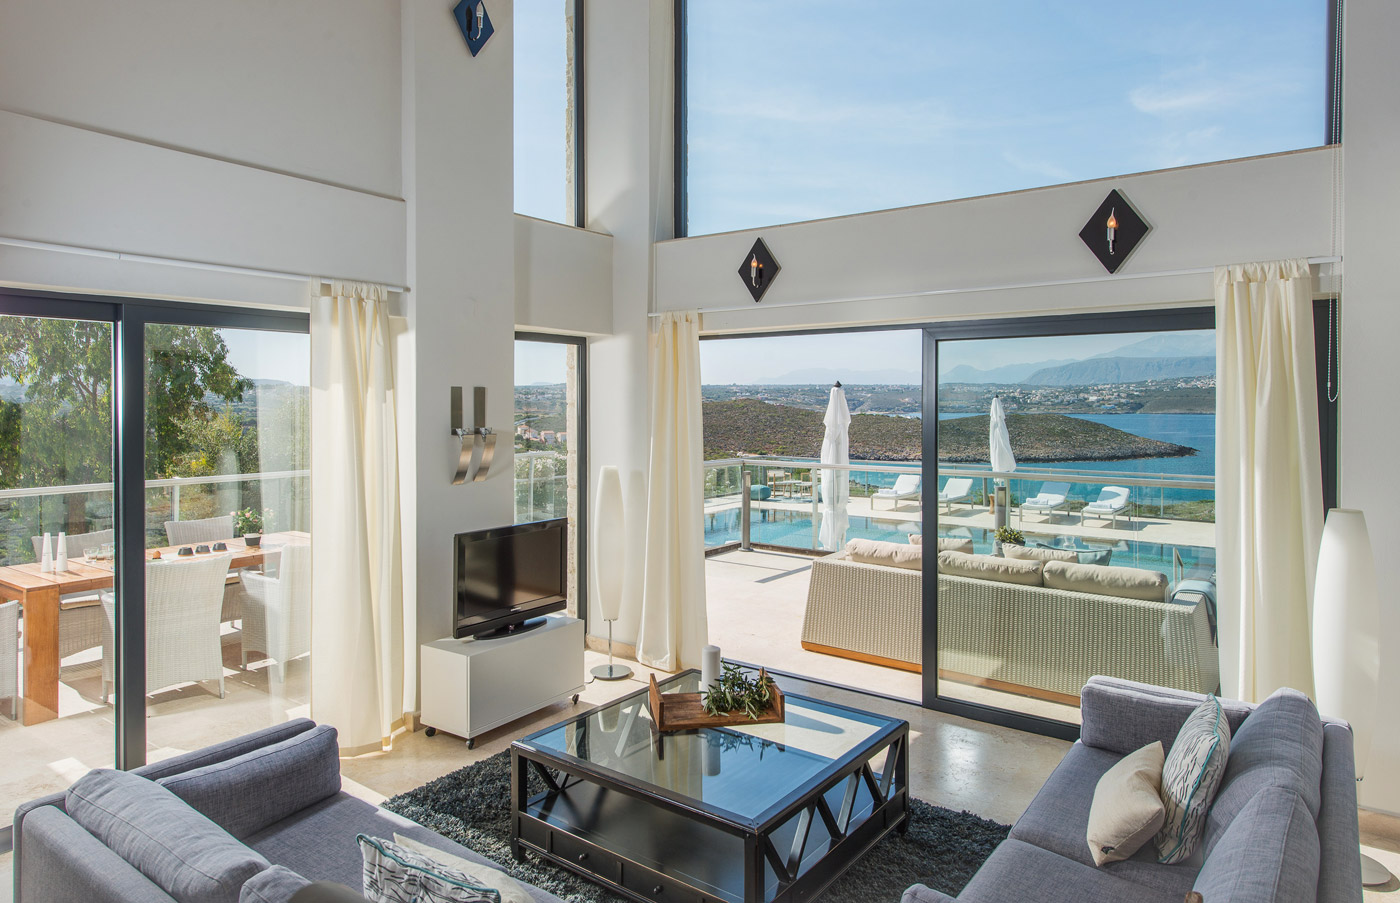 Athena villas in tersanas chania for Living room view